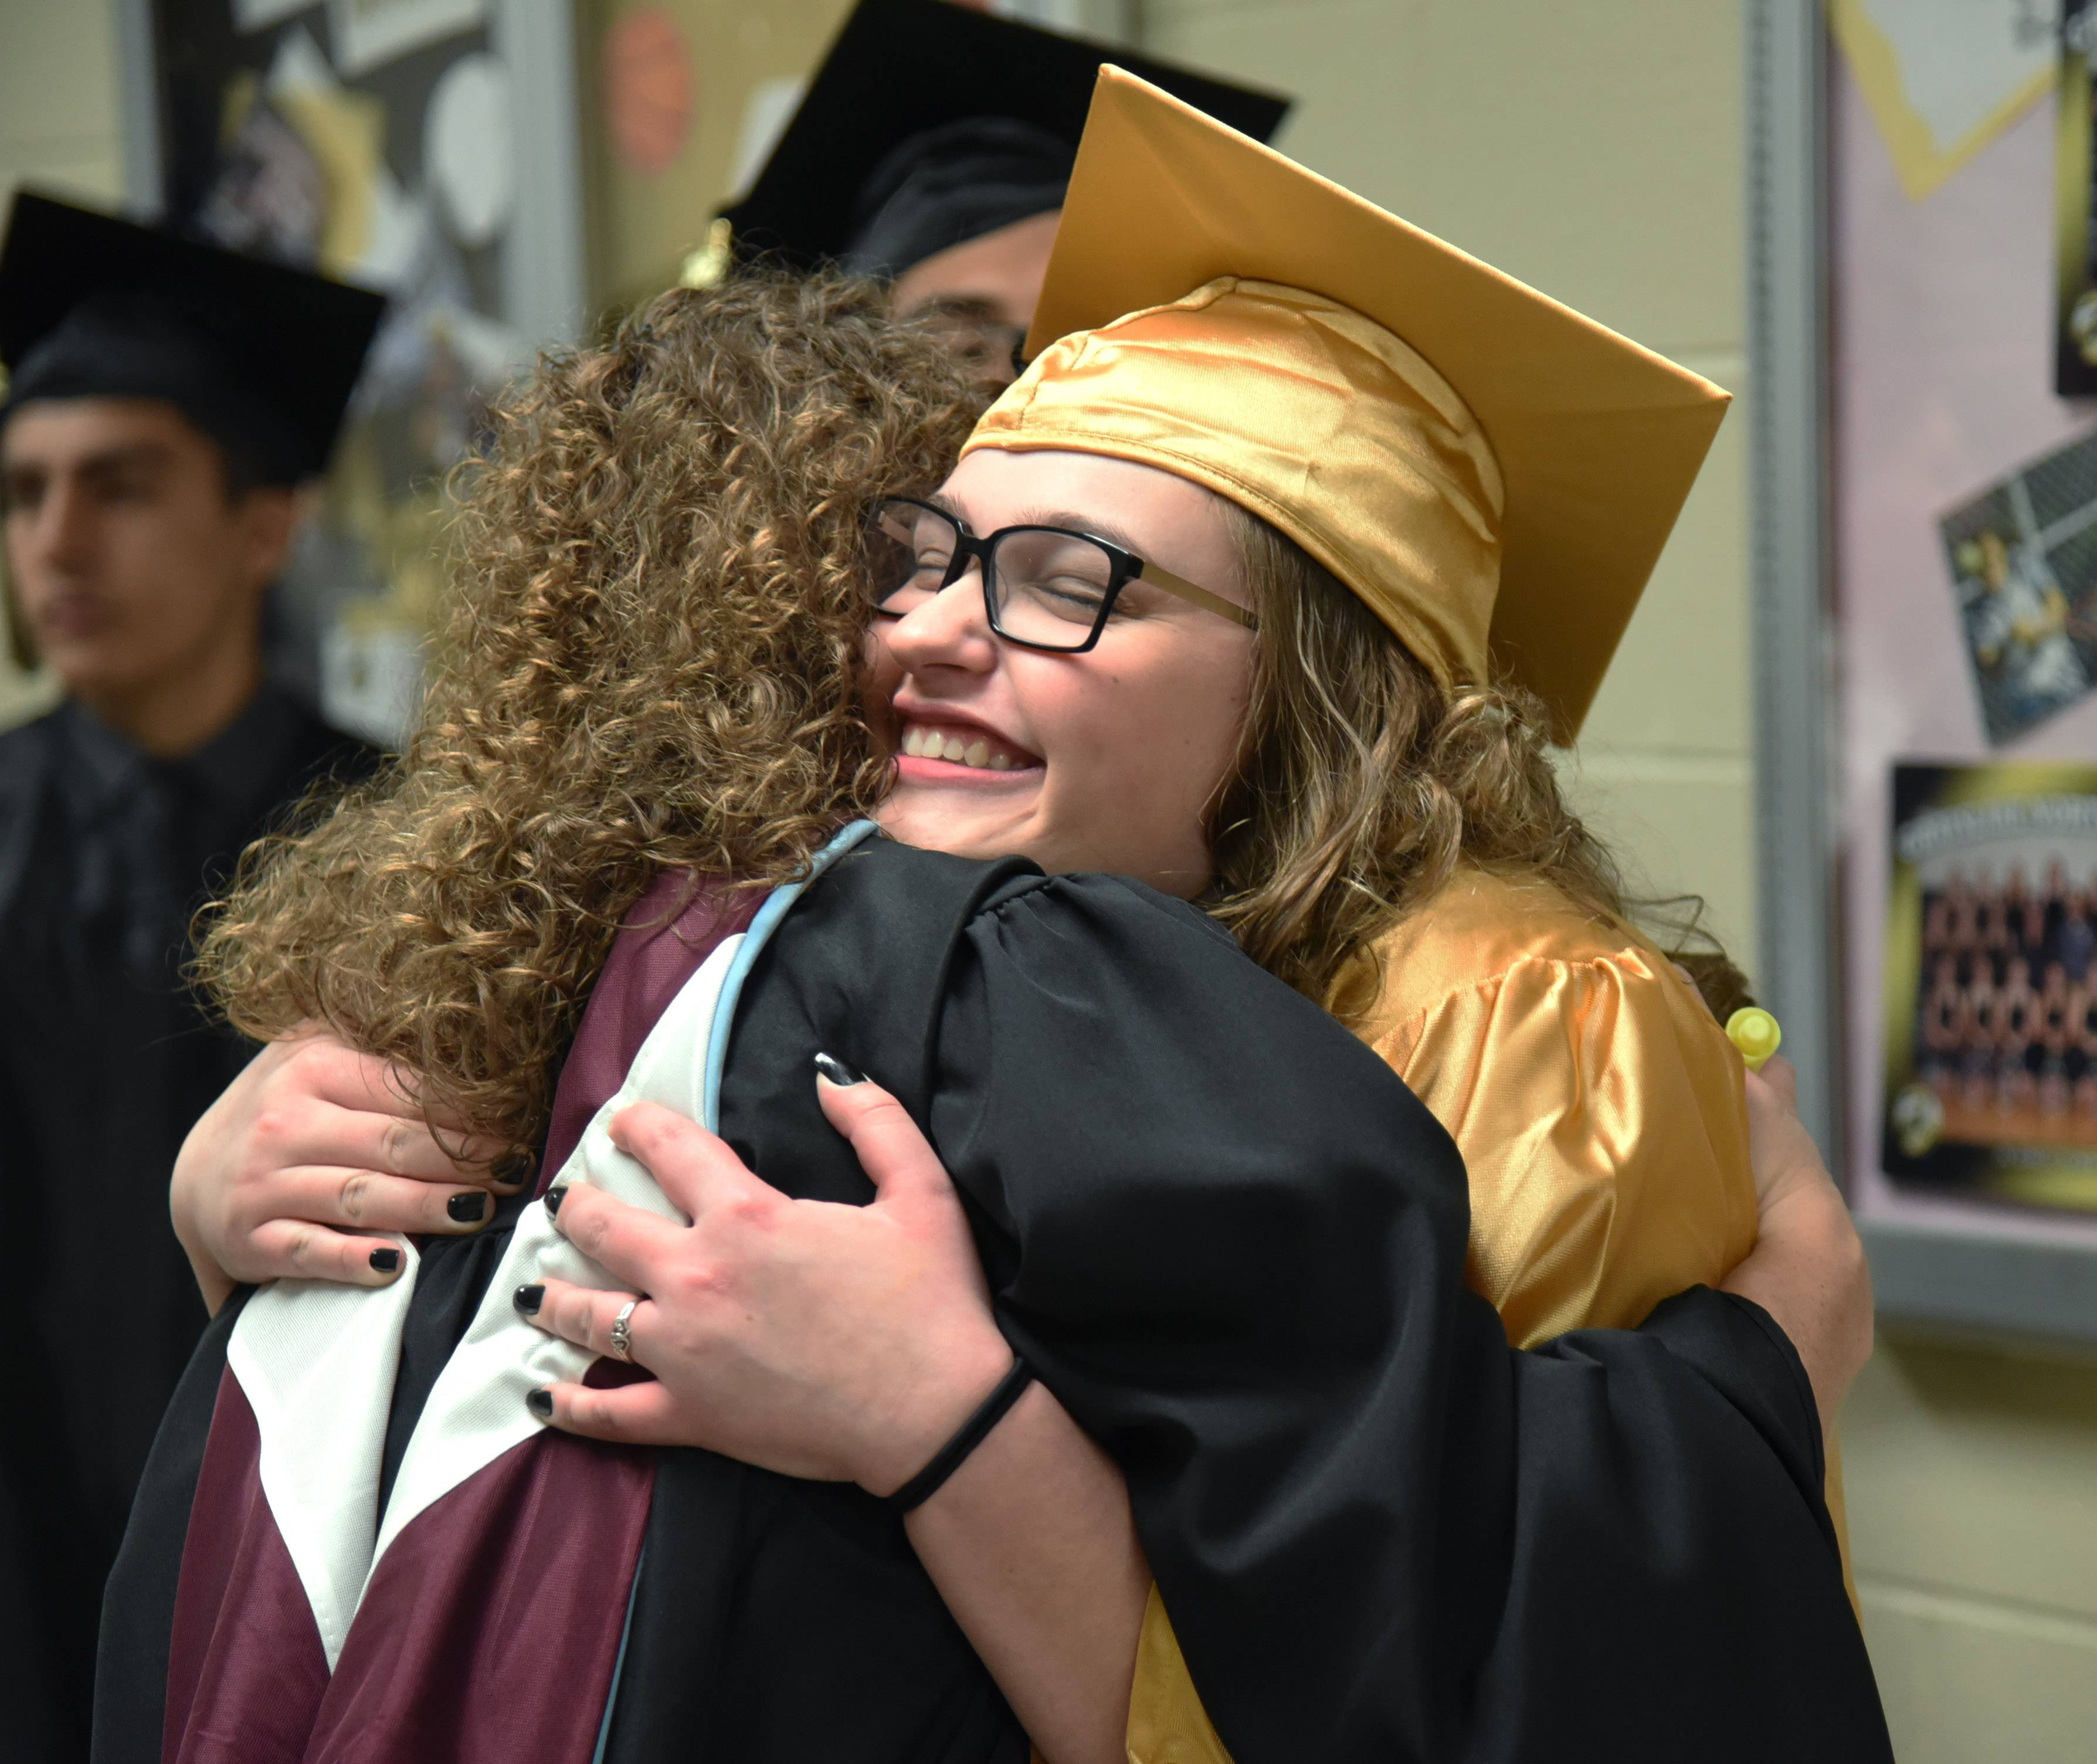 Images: Grayslake North High School graduation